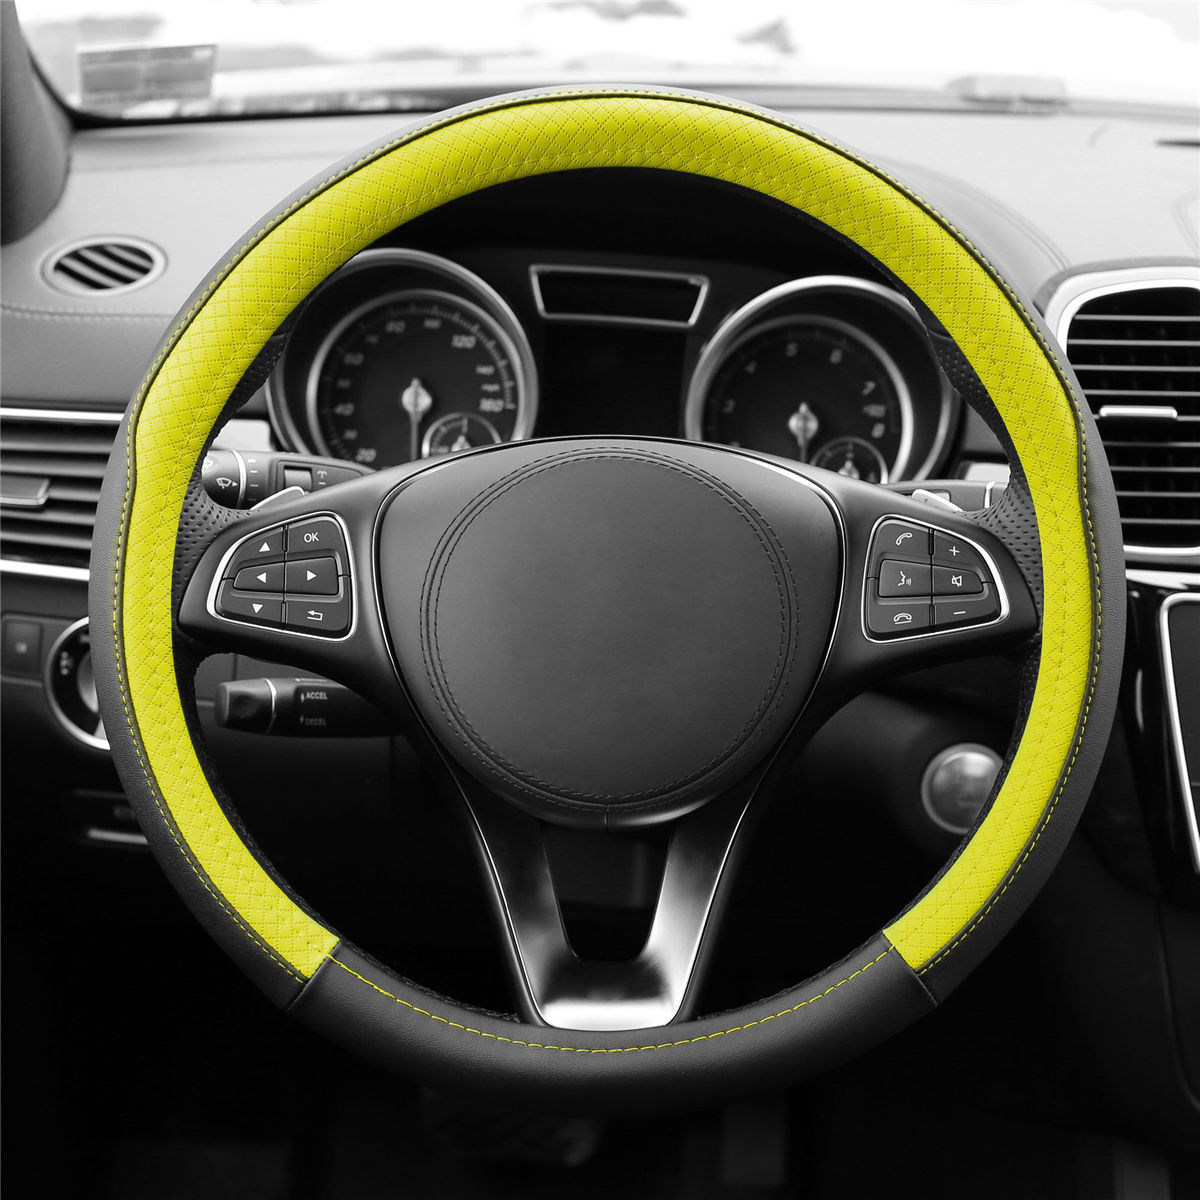 Geometric Chic Genuine Leather Steering Wheel Cover FH2009 Front View Yellow